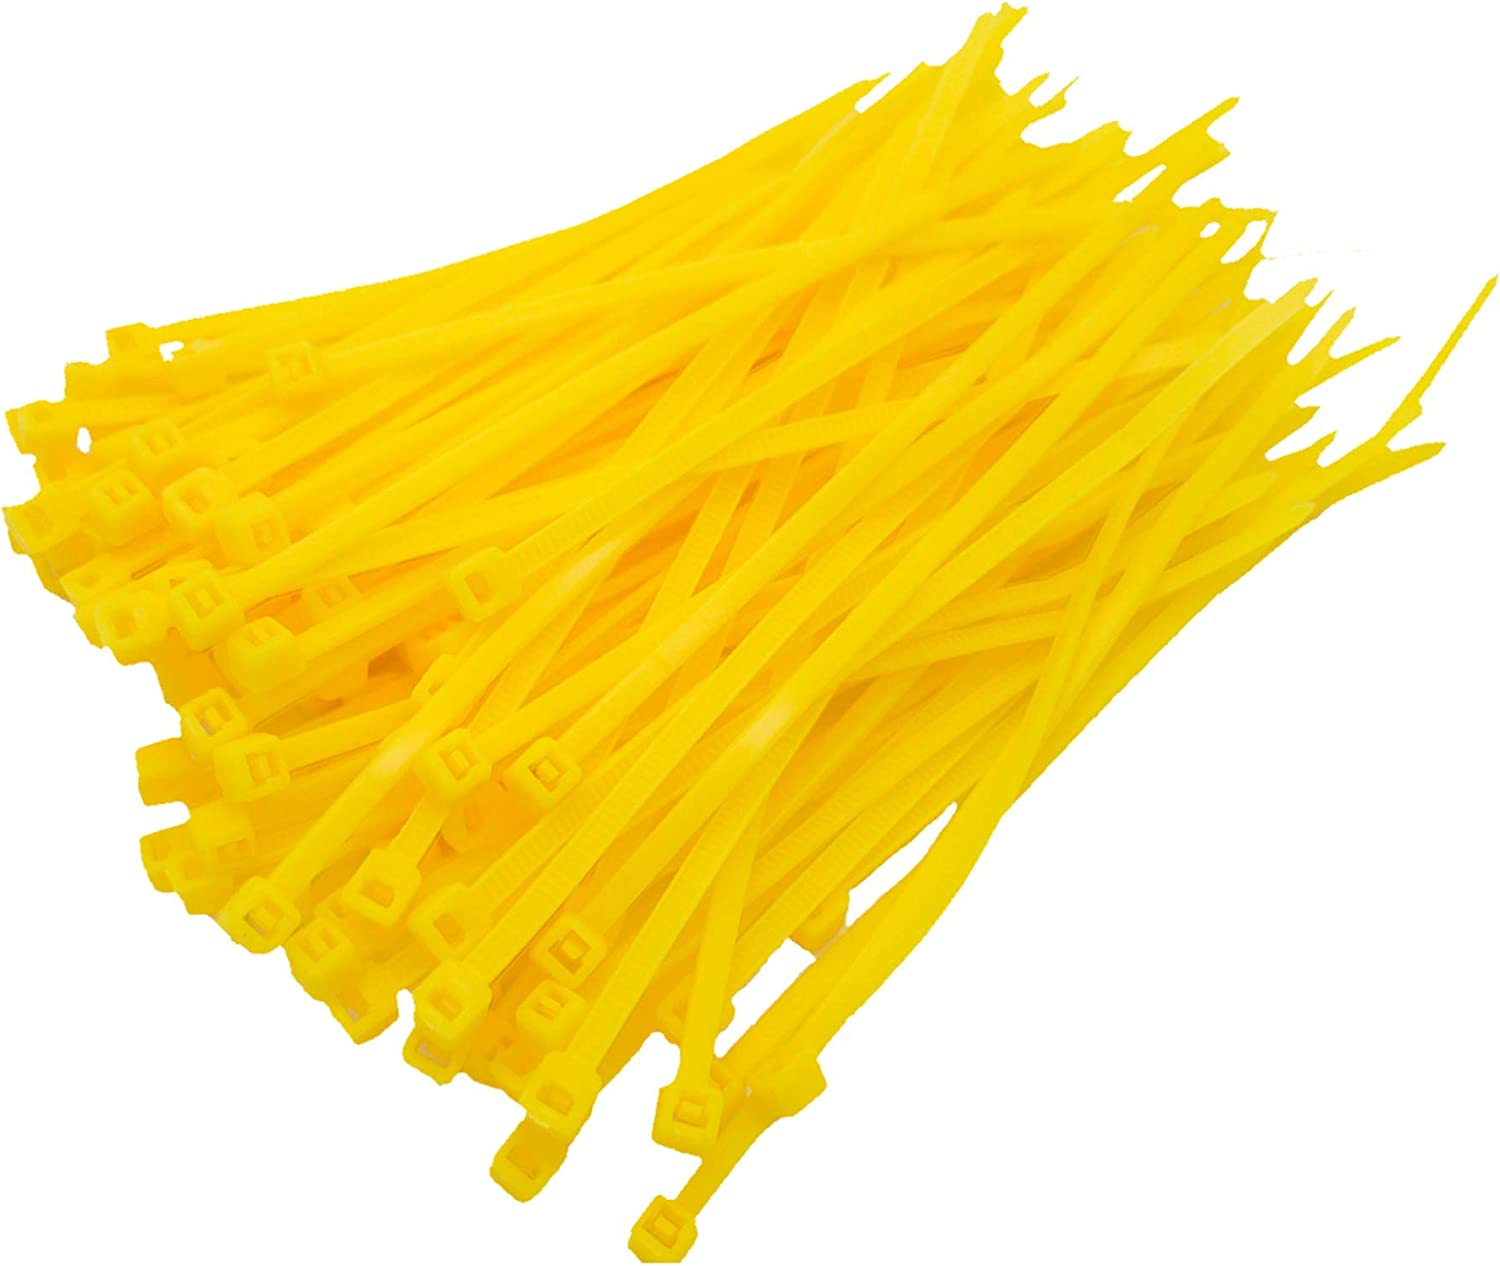 Very Strong 100 Pack of Yellow Cable Ties 100mm x 2.5mm High Quality Nylon Zip Ties Kratos Supplies UK Supplier